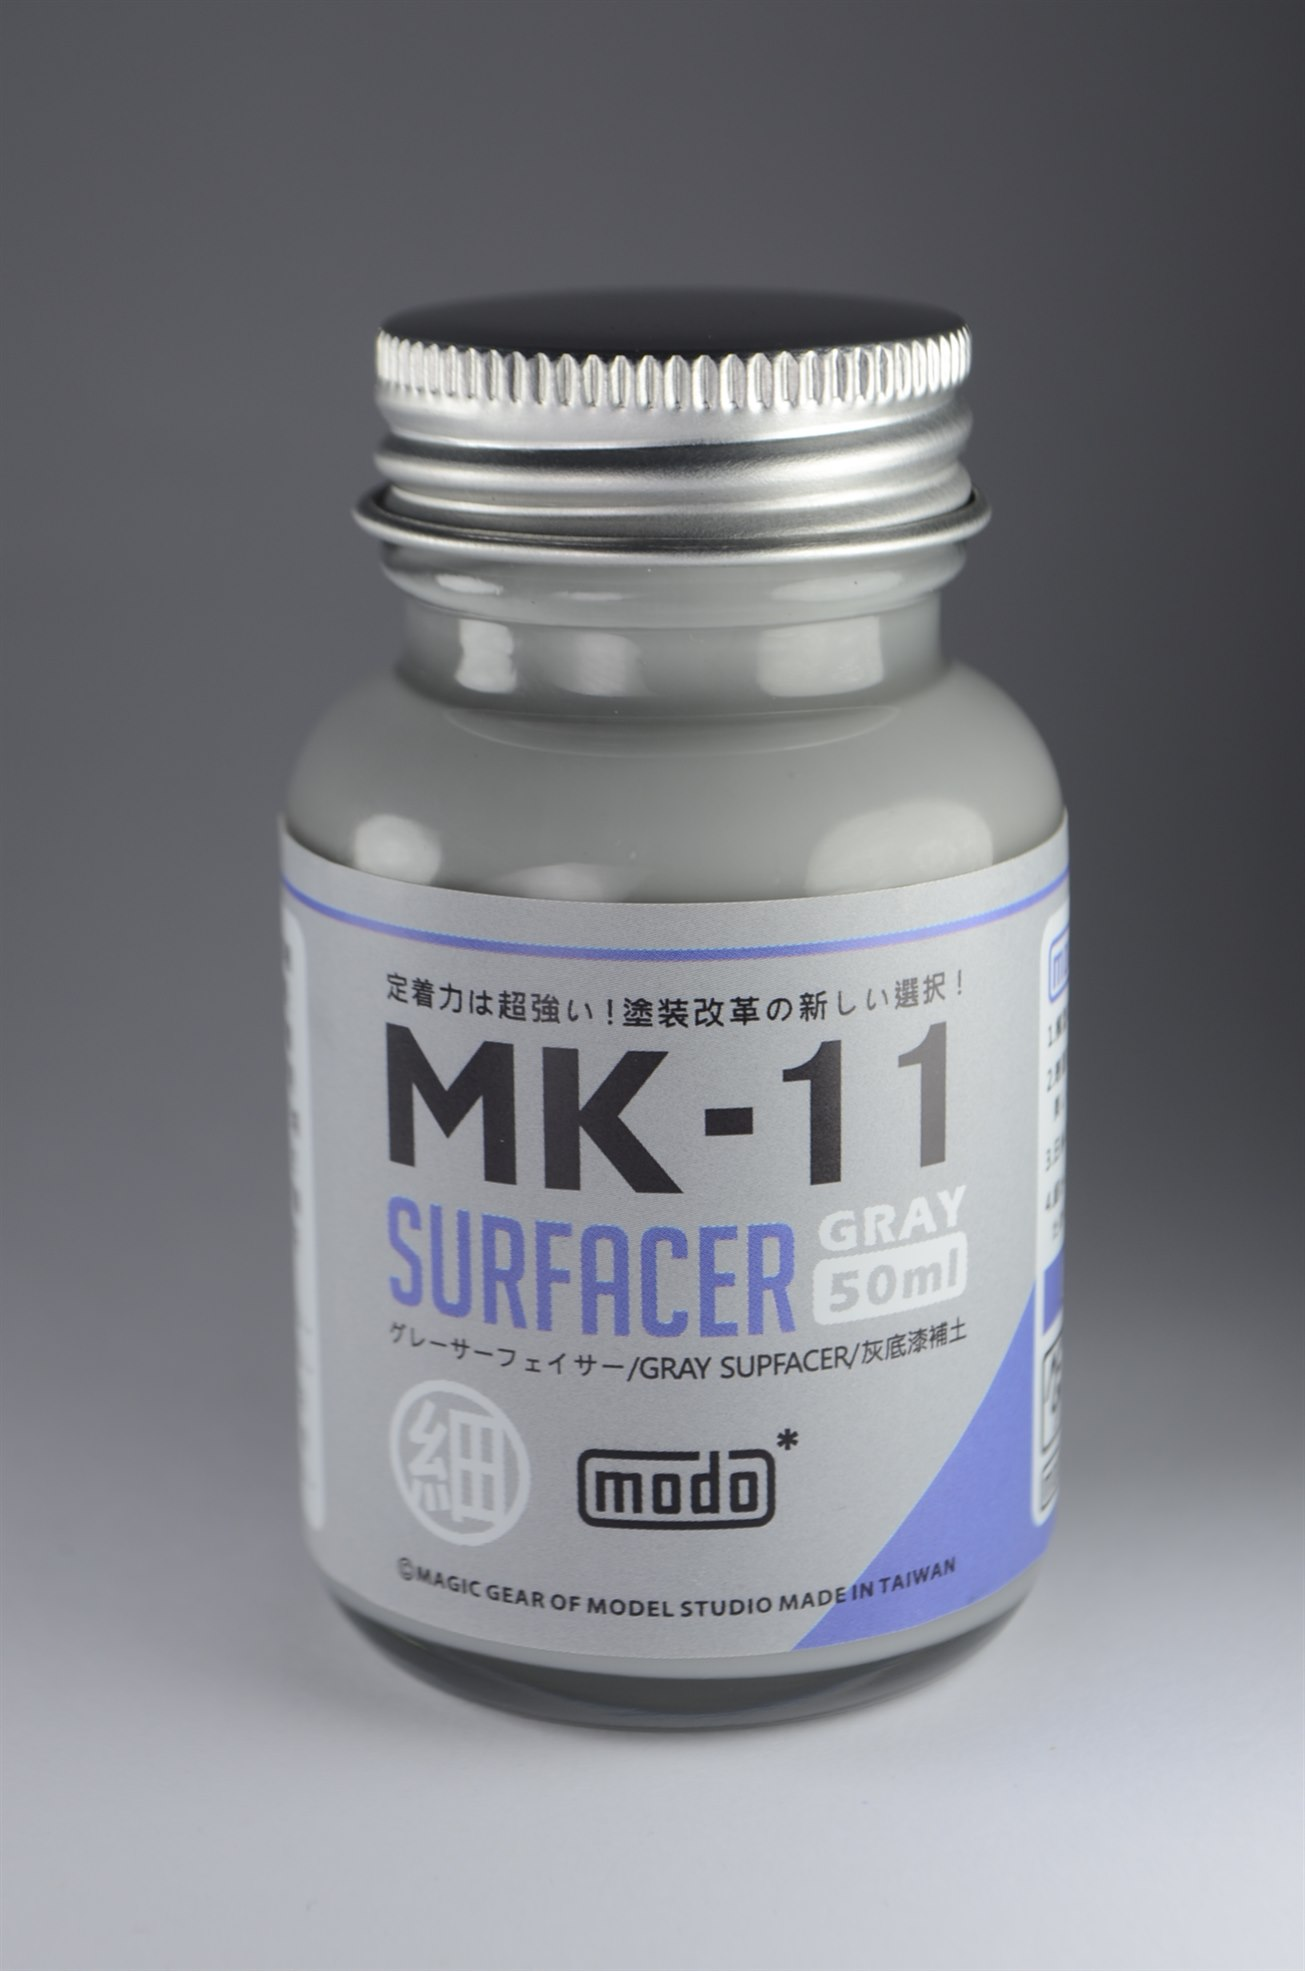 MODO MK-11 Surfacer (Grey) 50ML